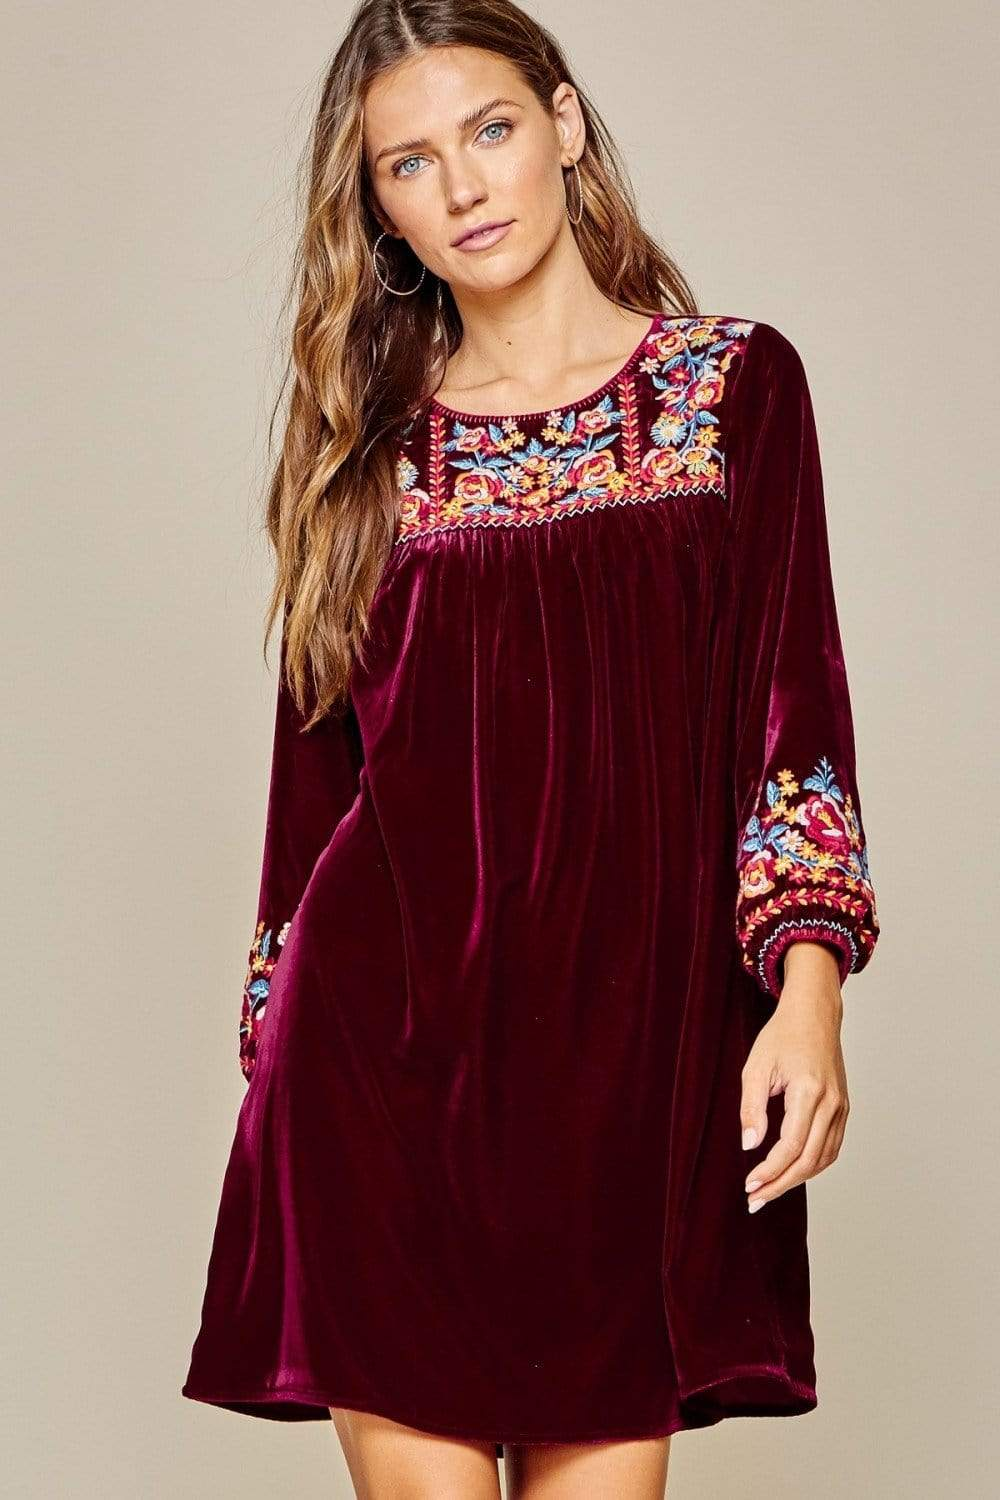 Andree by Unit Dressy Velvet Baby Doll Embroidered Dress-Wine